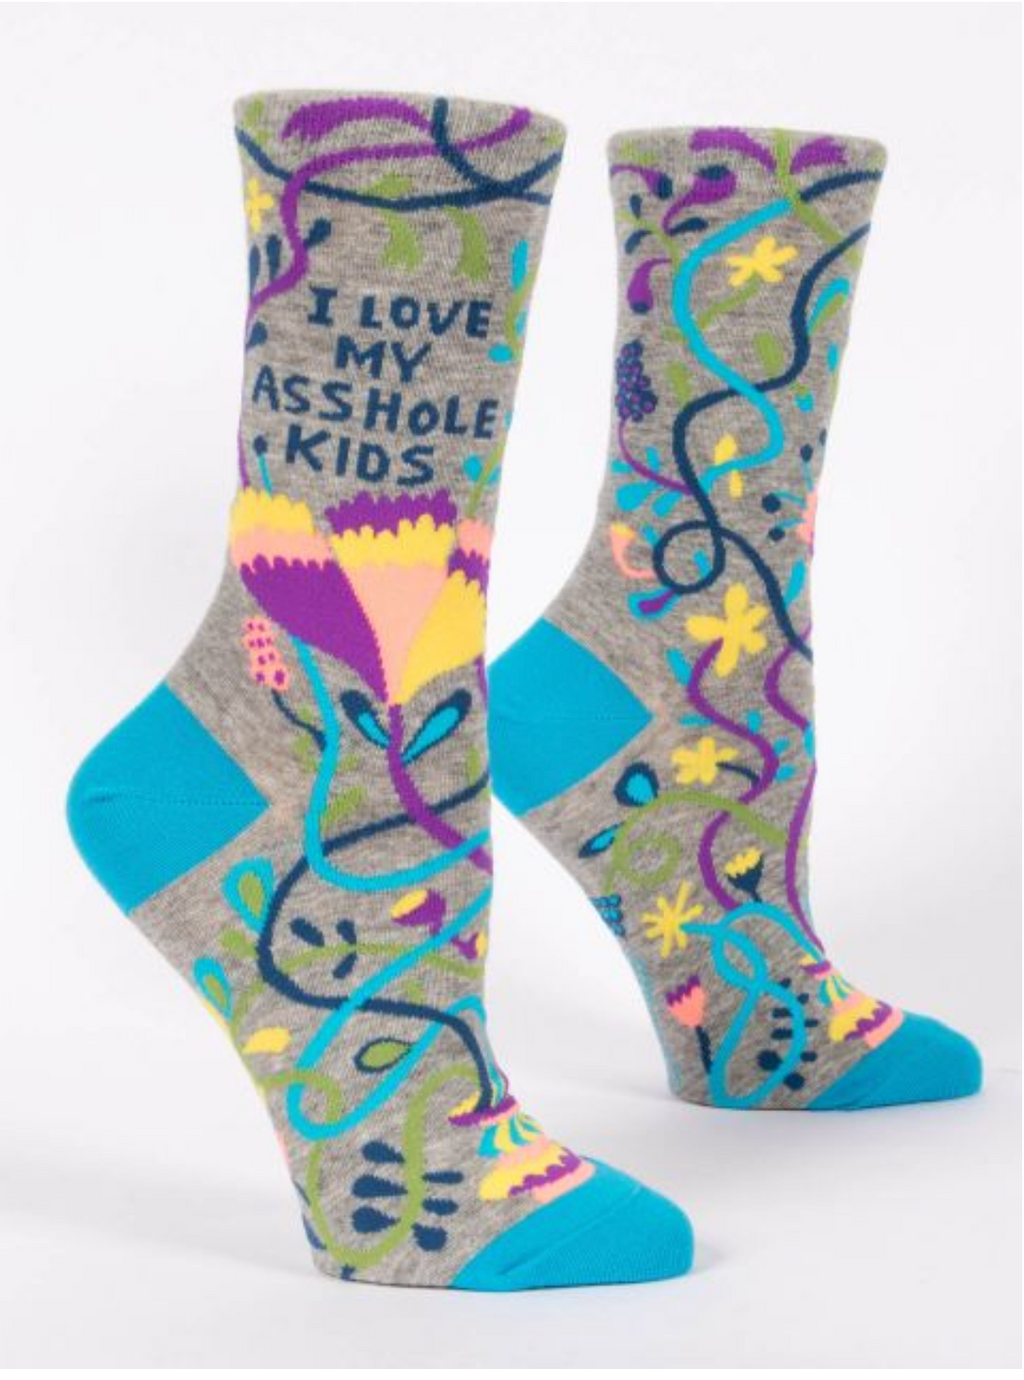 I Love My Asshole Kids Socks